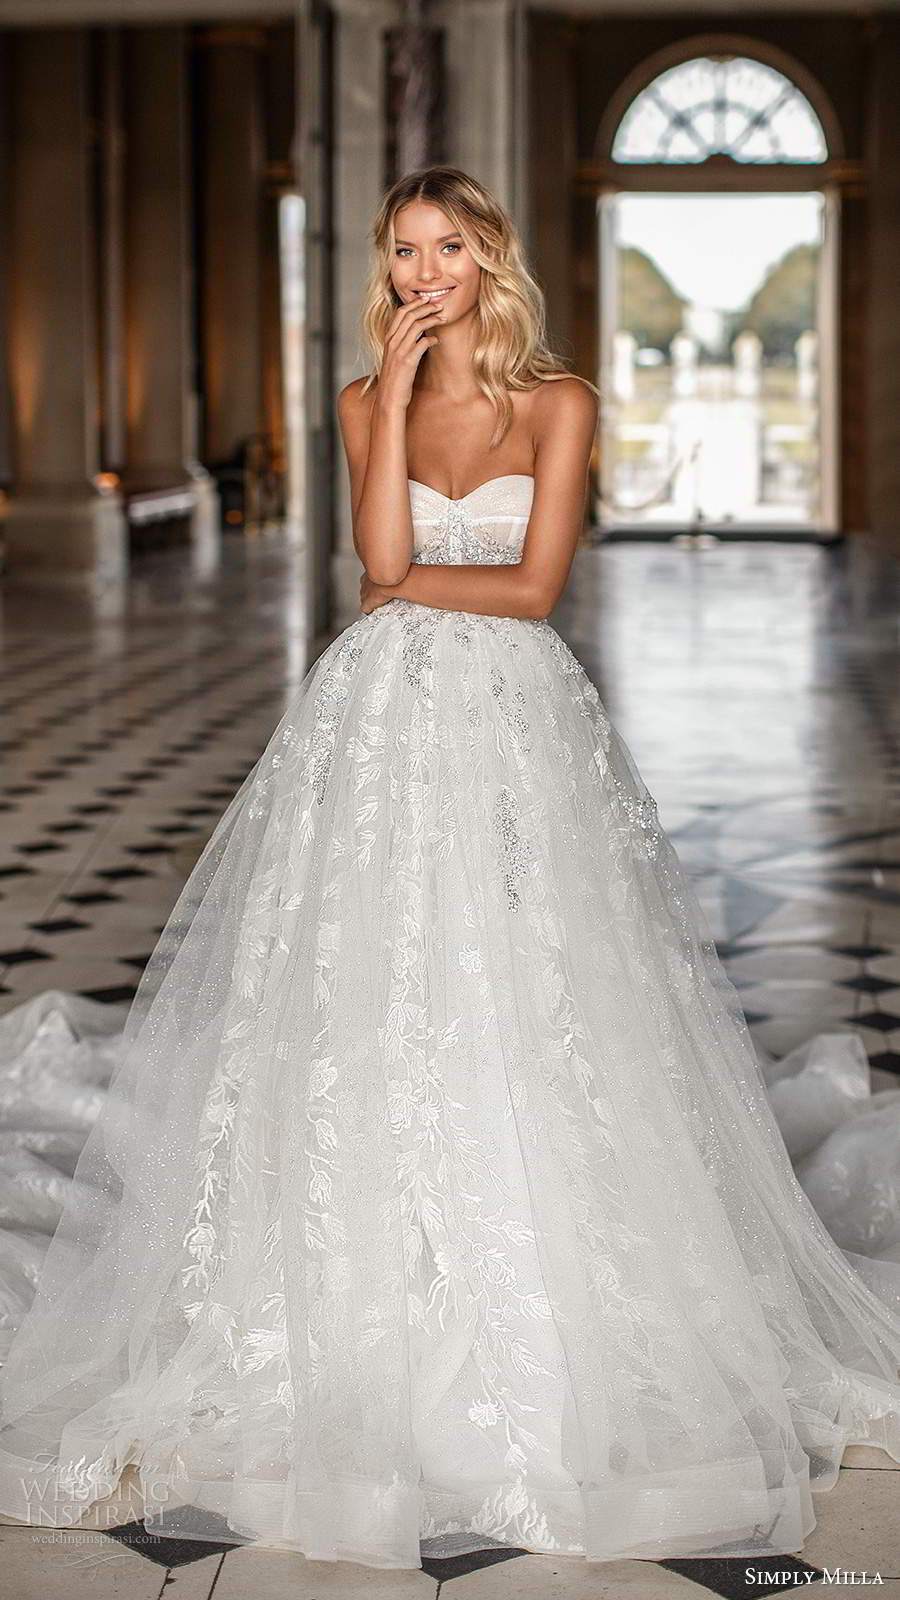 simply milla nova 2020 bridal strapless sweetheart neckline fully embellished aline ball gown wedding dress cathedral train (1) mv